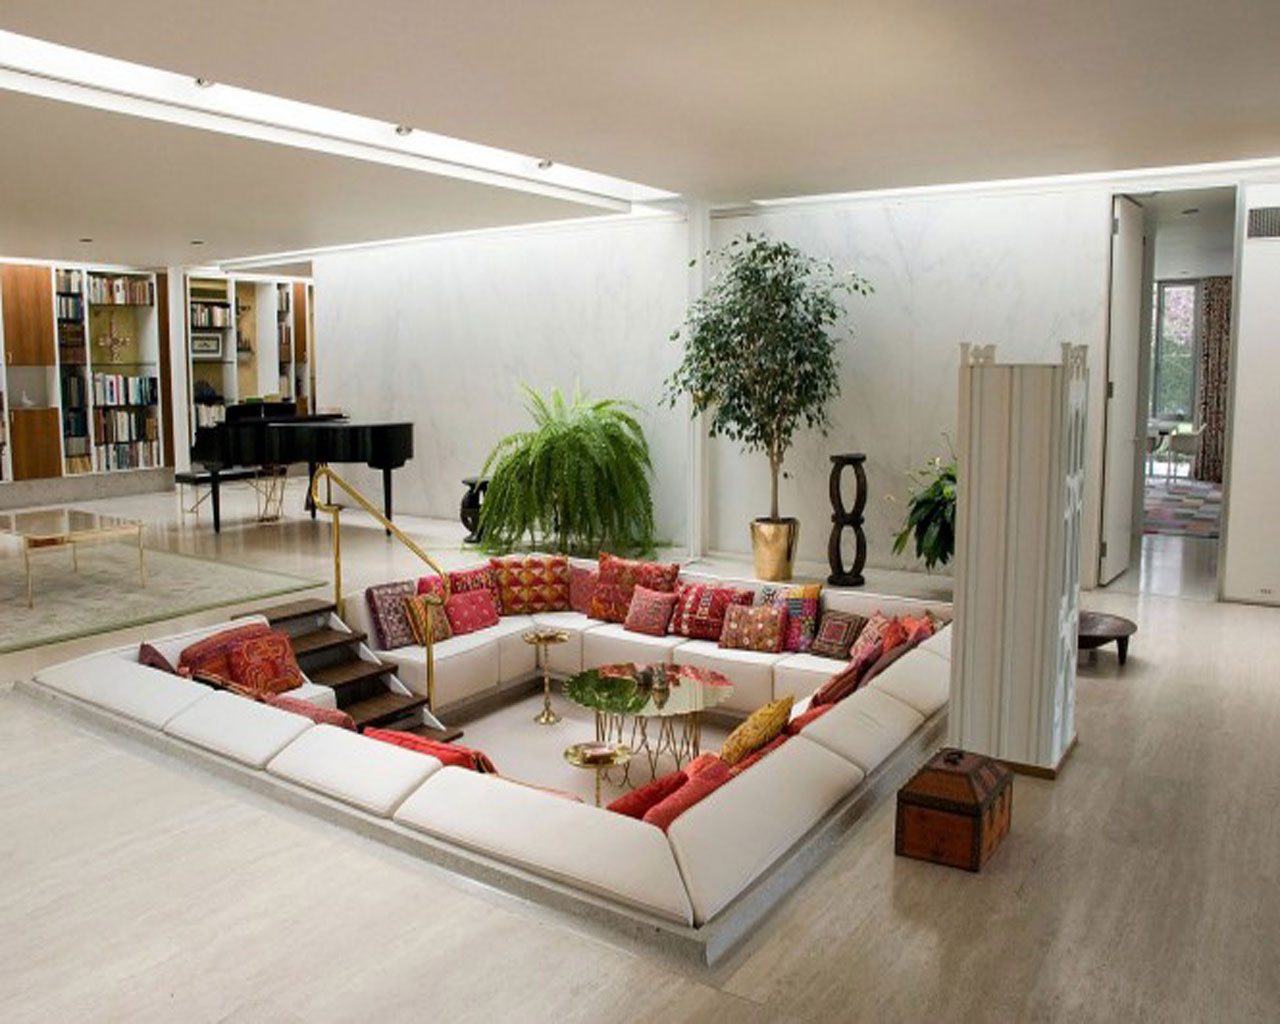 How can i apply feng shui principles to decorate my living for Good living room designs